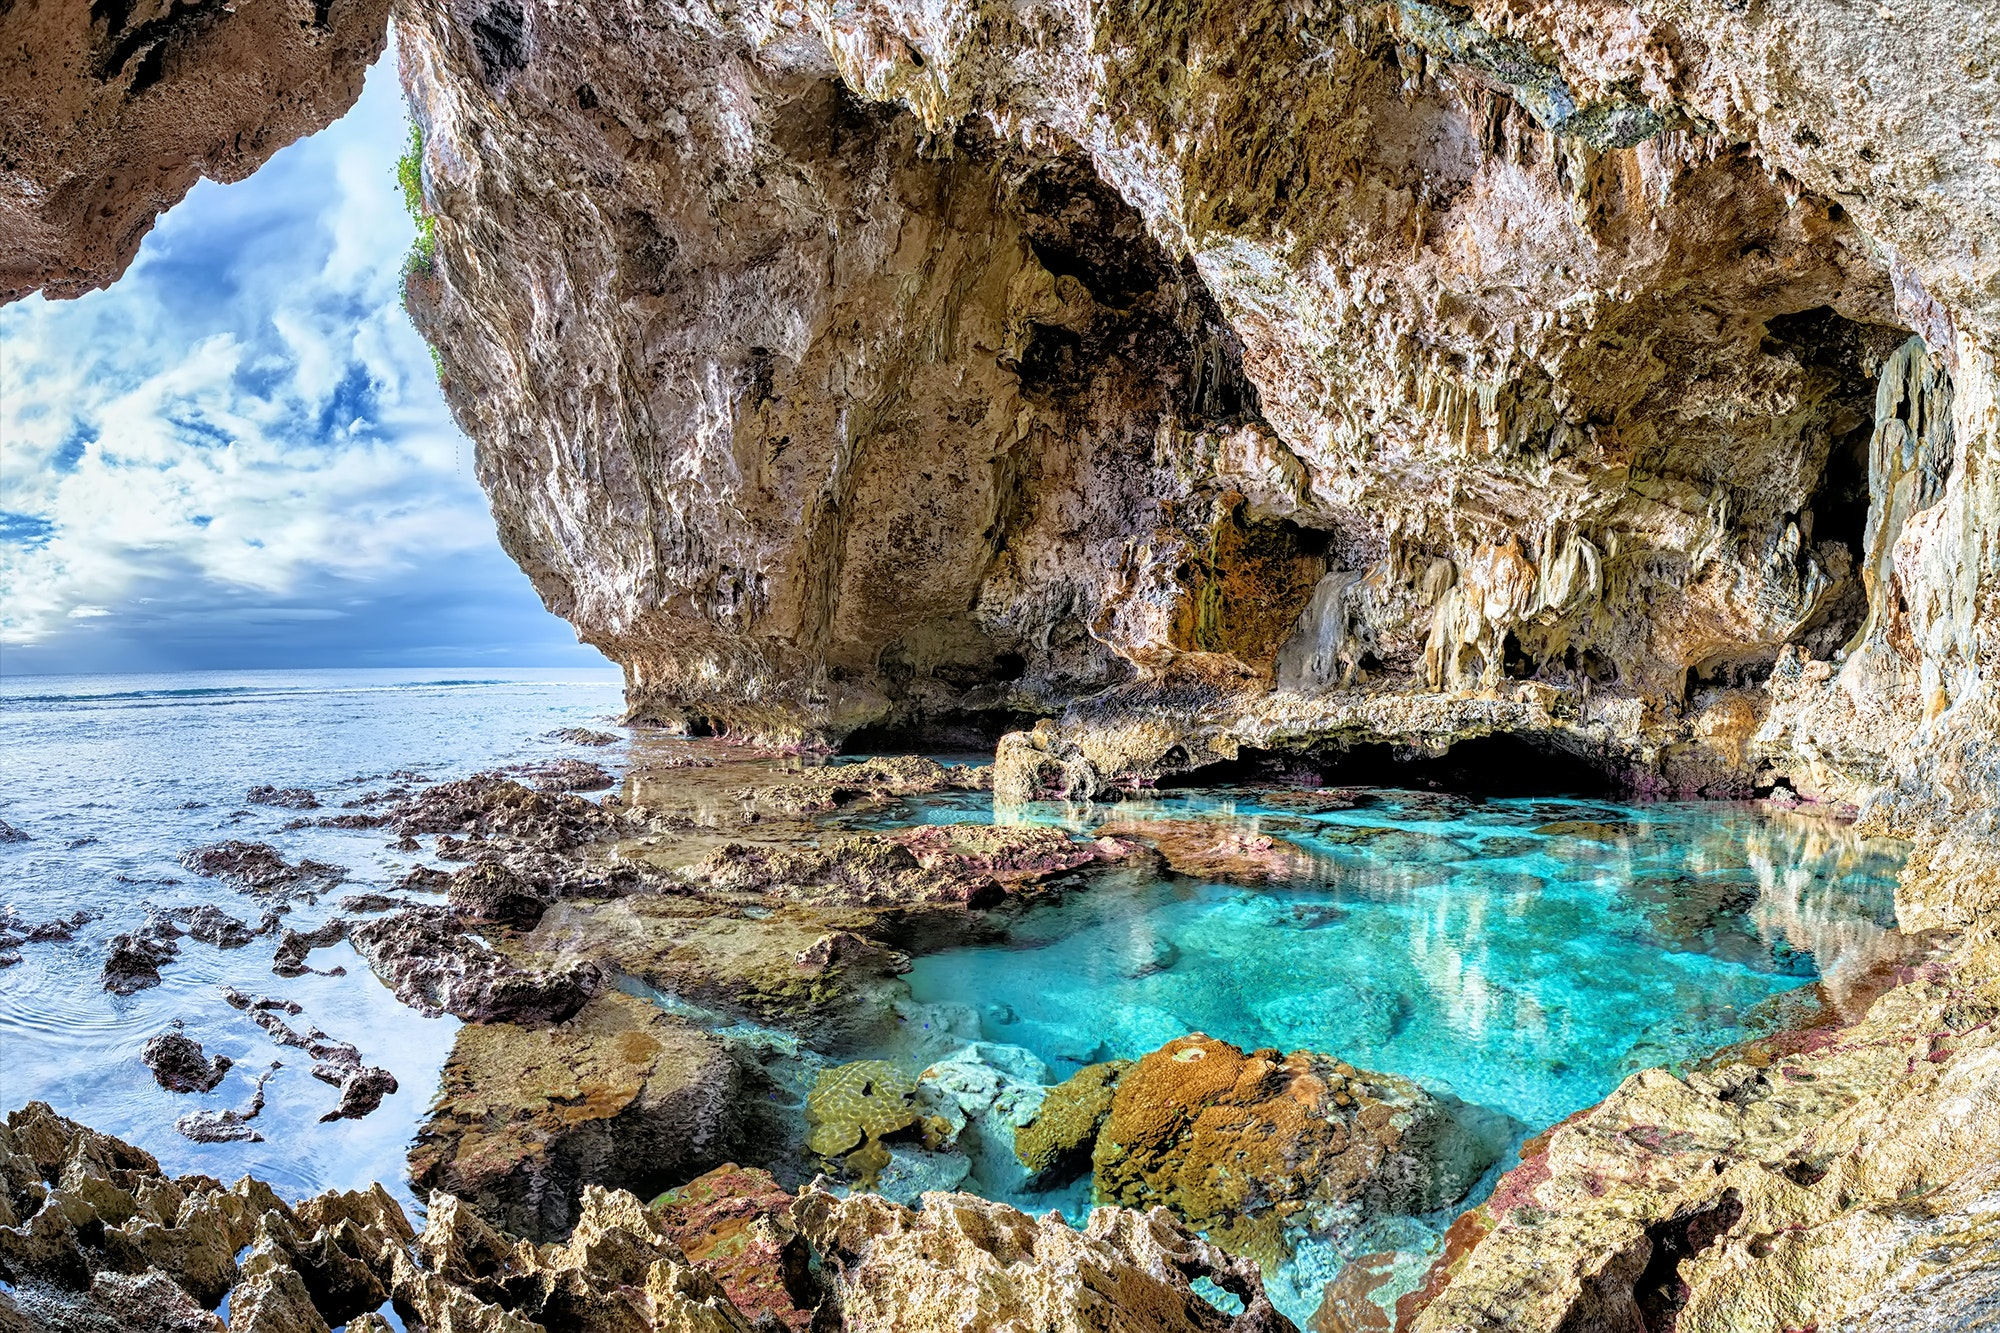 The clear waters and limestone caves off the coast of Niue are popular with divers.